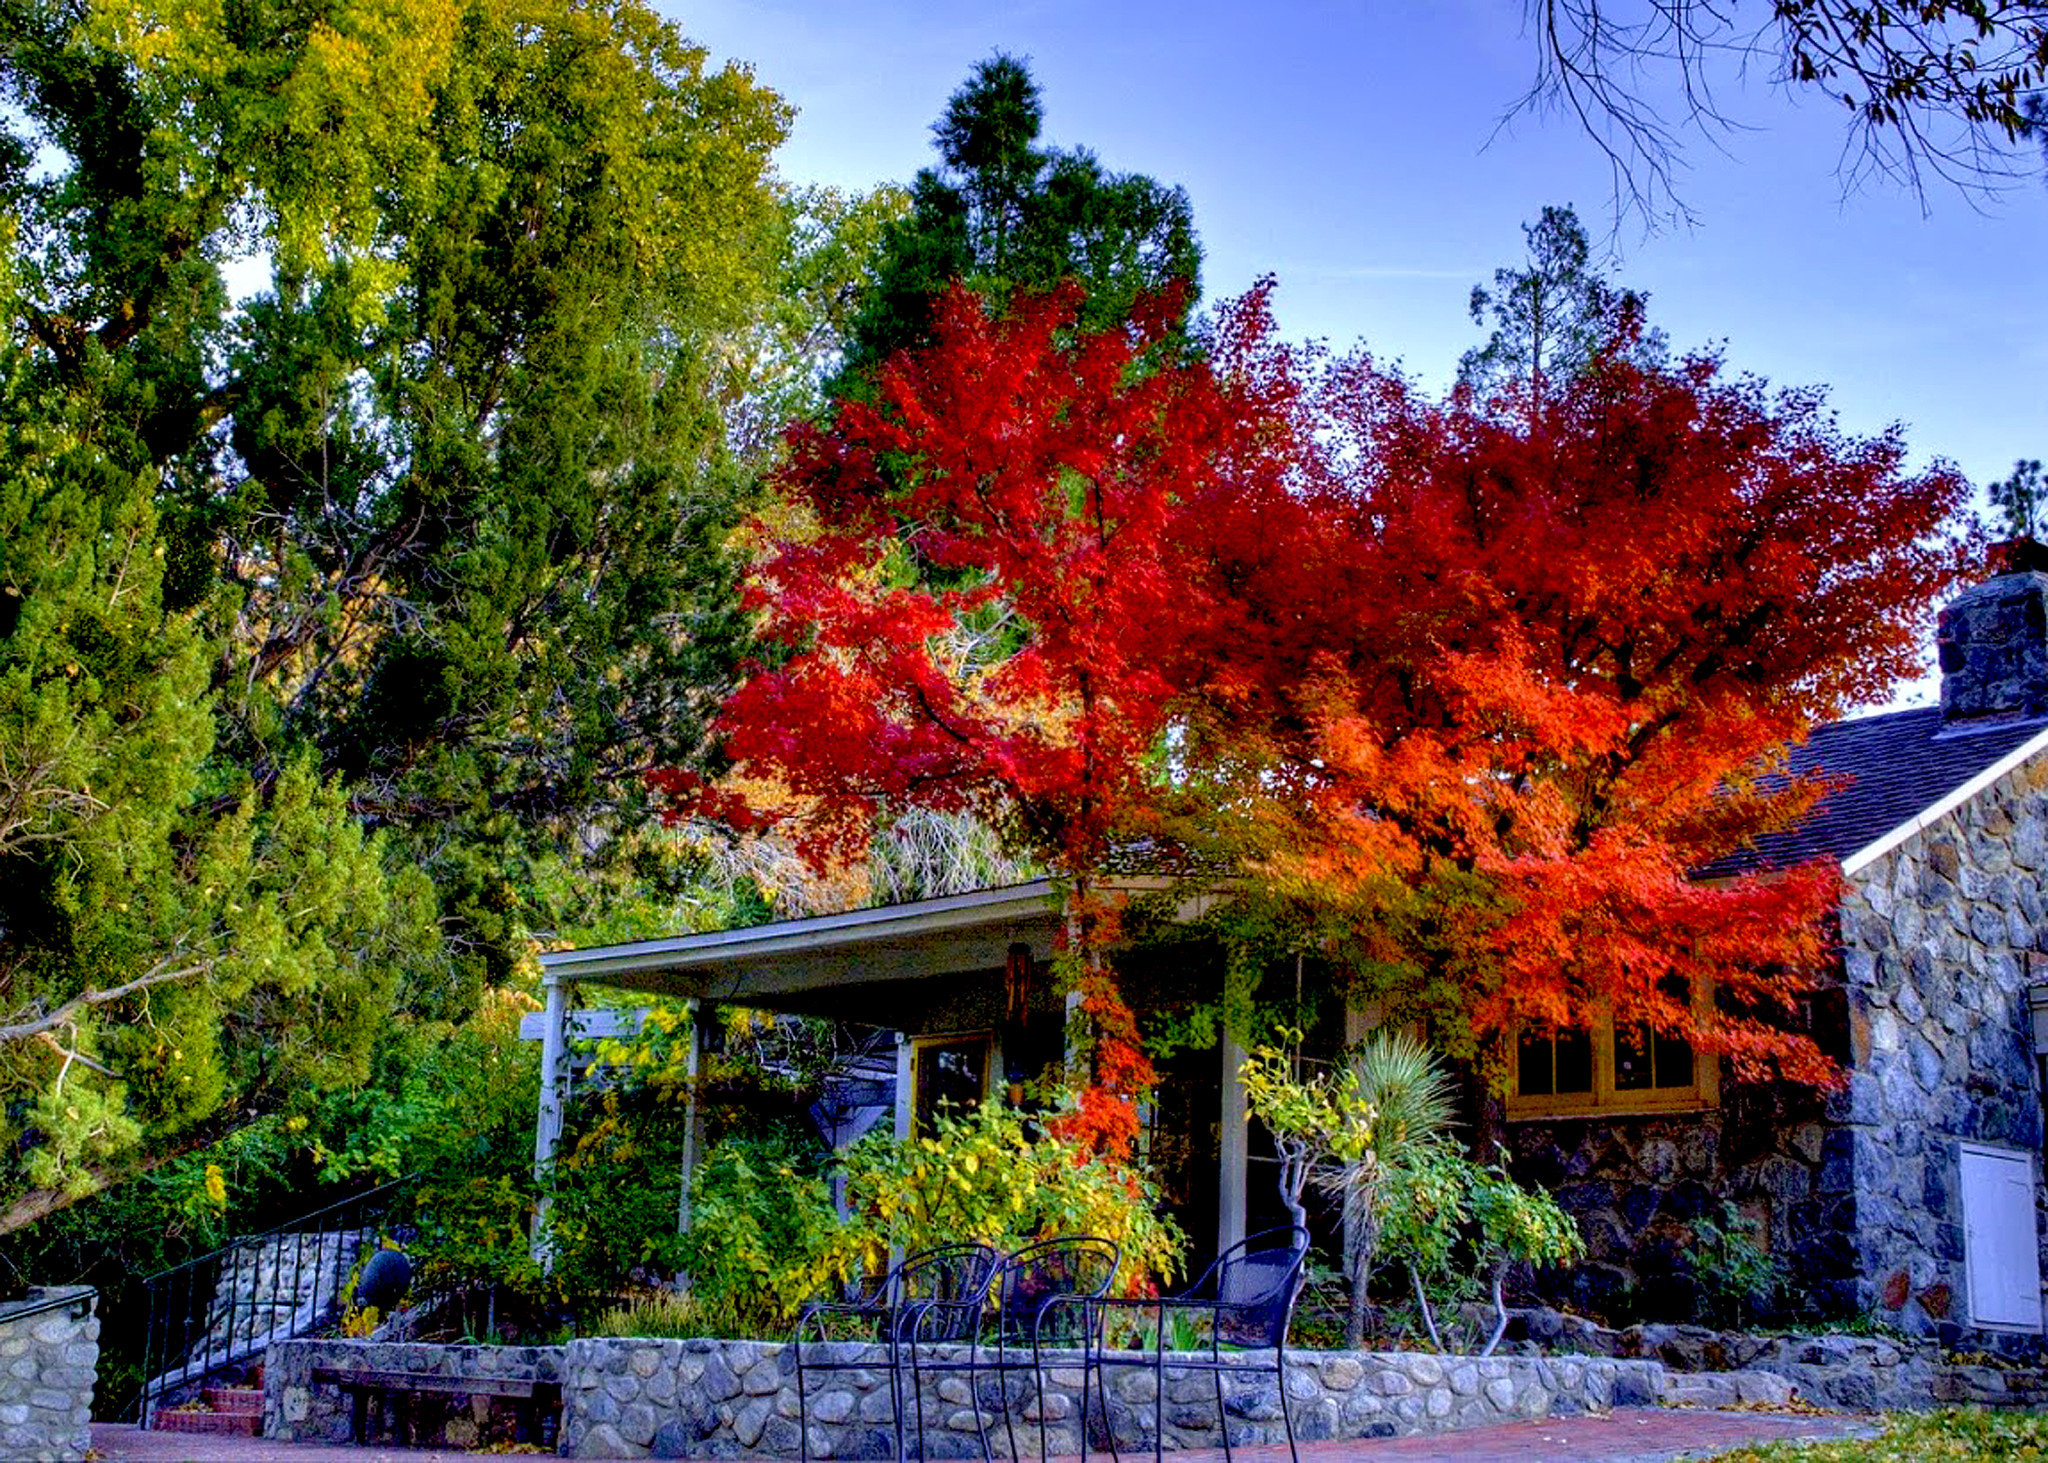 California fall colors: Easy L.A. getaway to Valyermo's red blush